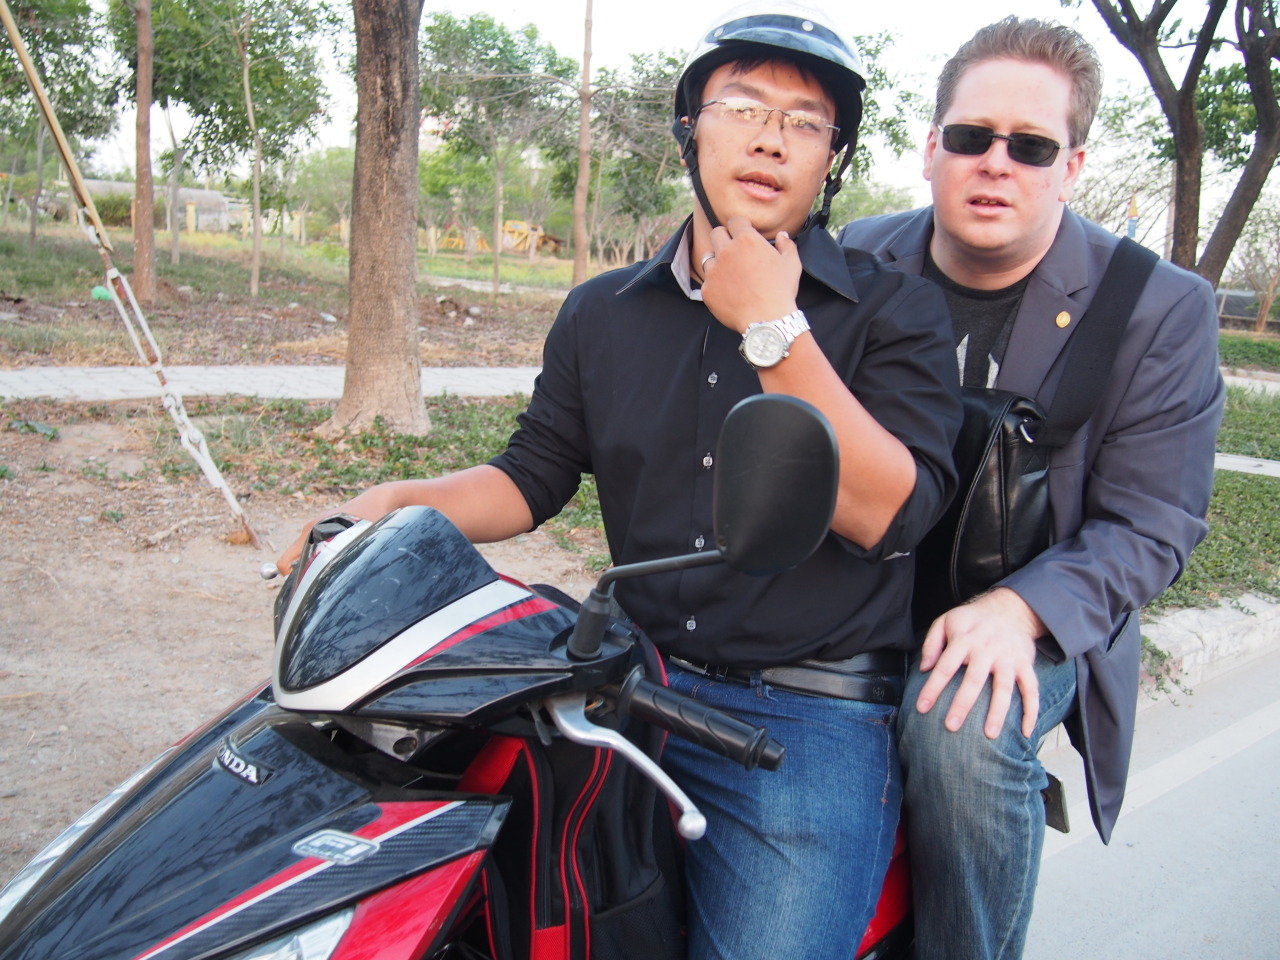 """""""What's the plan, exactly?"""" It's 5:30 in the afternoon and I'm sitting on the curb outside the Saigon port with a magician and a crew of wiry Vietnamese taxi drivers. """"I'm not really sure."""" """"Well, what did they tell you?"""" """"That they'd pick us up here and take us into the city."""" """"But you do this all the time?"""" """"All the time. Most ports we hit. Normally we just go to a bar, show each other different card tricks. Super causal. """" """"And you told them I'm coming?"""" """"I did, but I said you're a magic journalist."""" """"A magic journalist?"""" """"They won't share secrets around a lay person. You need to be part of the community. It'll be fine—just play it cool."""" While I ponder the potential benefits of being a member of the international magic community, a pair of young Vietnamese pulls up on scooters. """"Mr. Jon Armstrong?"""" We each hop onto a bike and ride off, helmetless, into the Saigon sunset. After some gentle probing, I realize my driver, a sweet girl with a perfectly round face who tells me to call her Annie, has no idea who we are and even less of an idea of where we are going. The confusion is compounded moments later when two men on scooters pull up next to us on the road and begin to shake their fists. It seems the local taxi racket doesn't take kindly to strangers swooping into the port and picking up two potenti"""